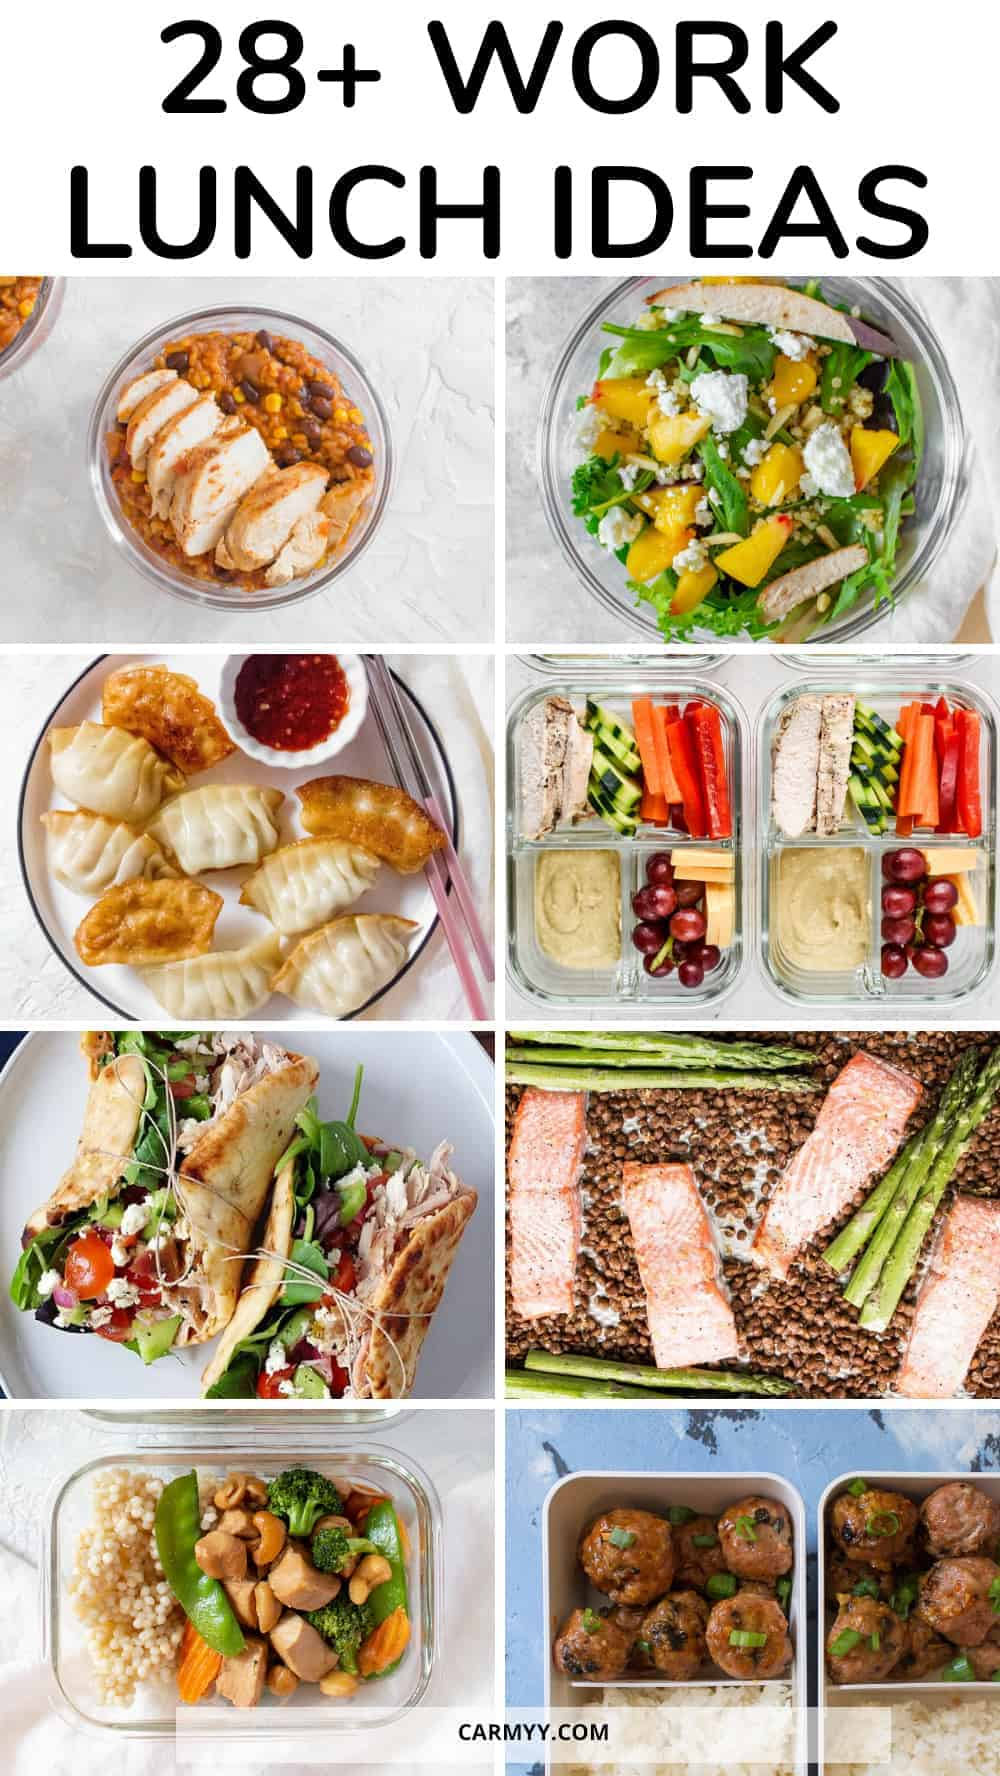 New Meal Prep Ideas For Work Lunch